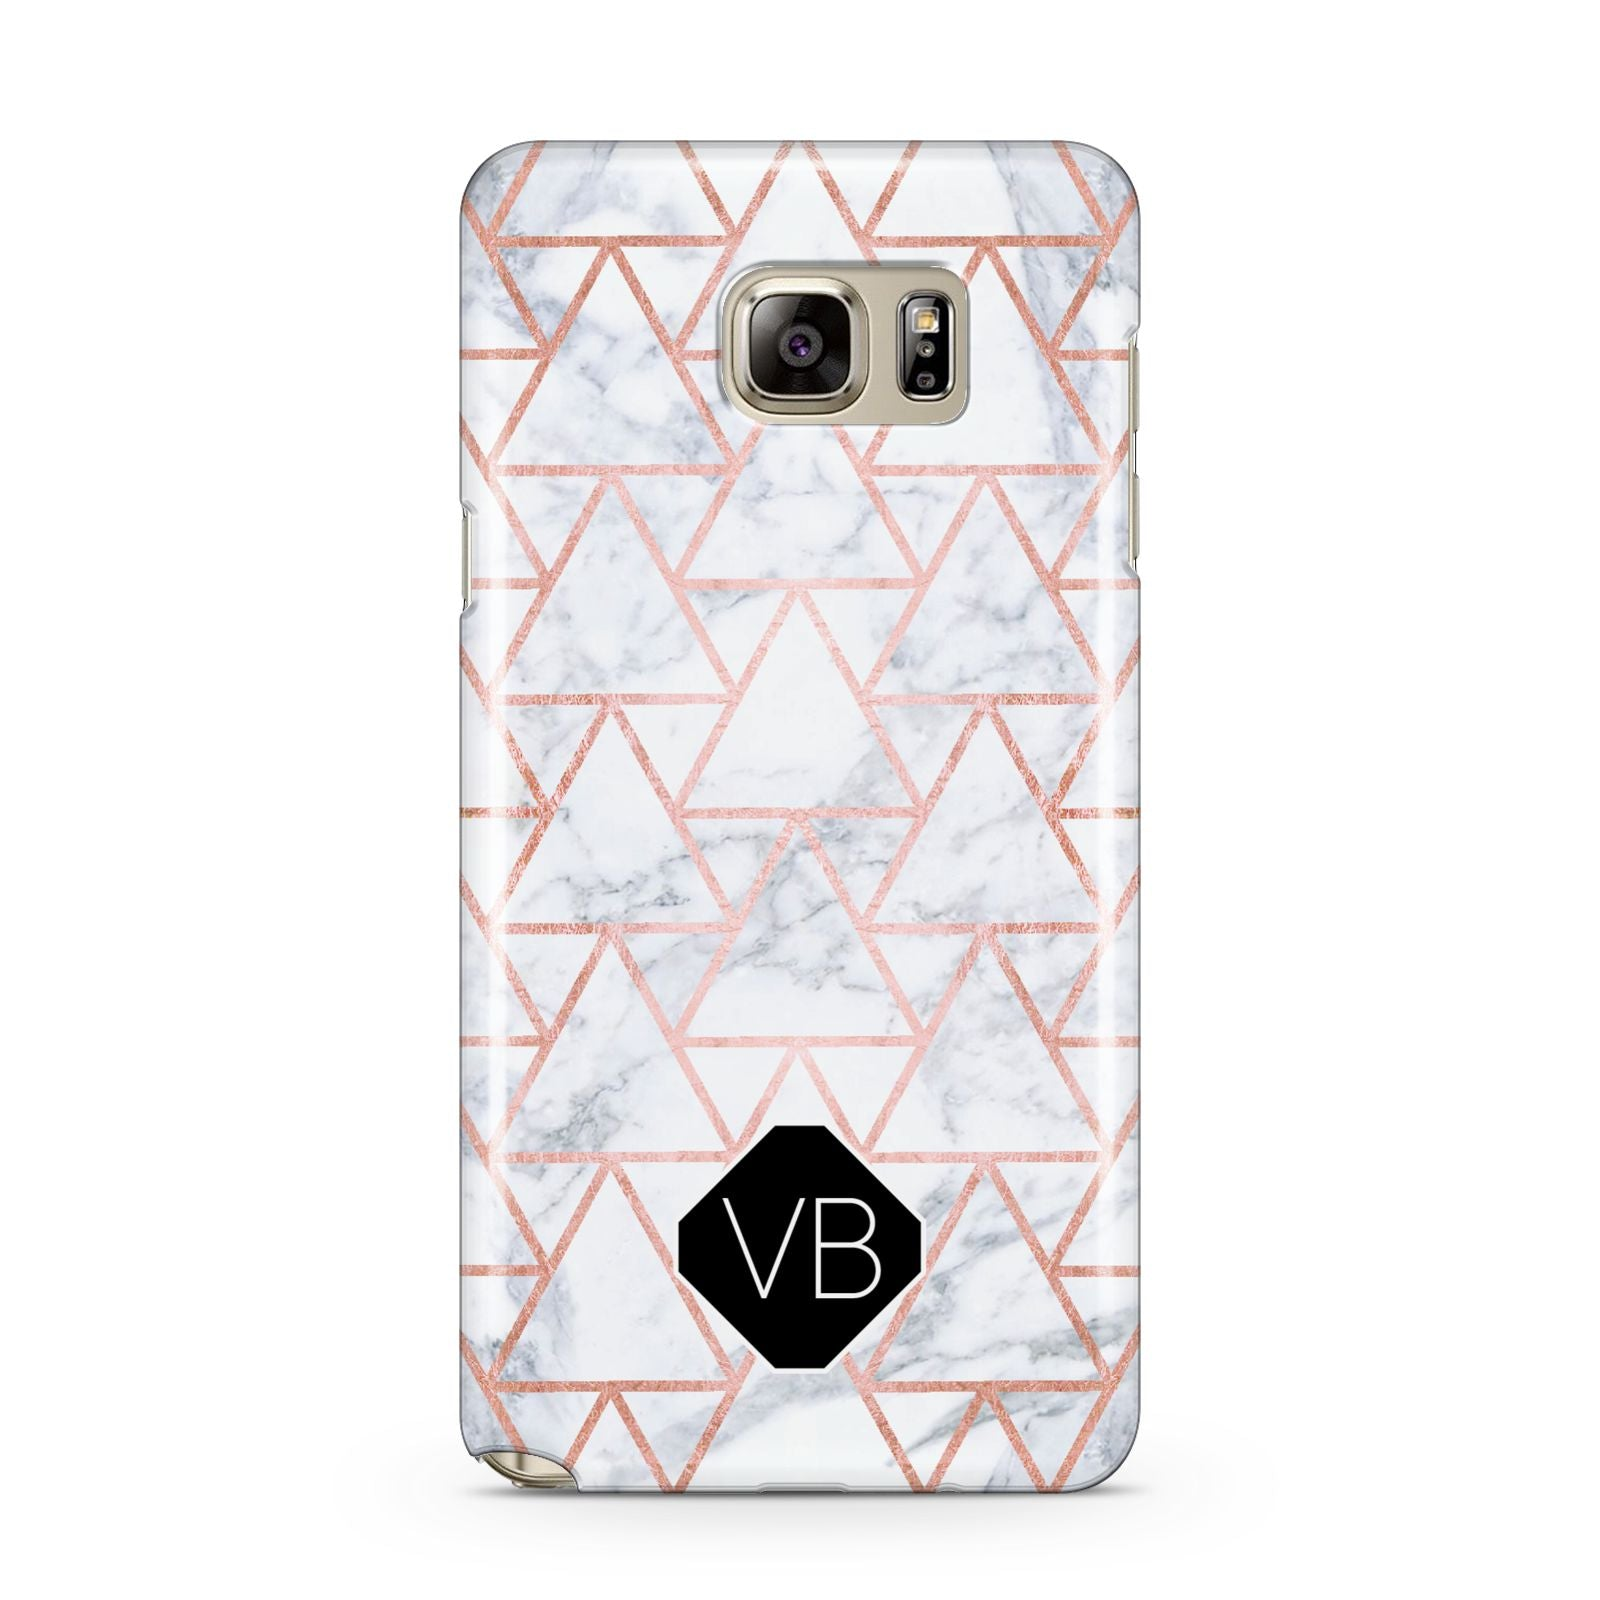 Personalised Rose Gold Grey Marble Hexagon Samsung Galaxy Note 5 Case